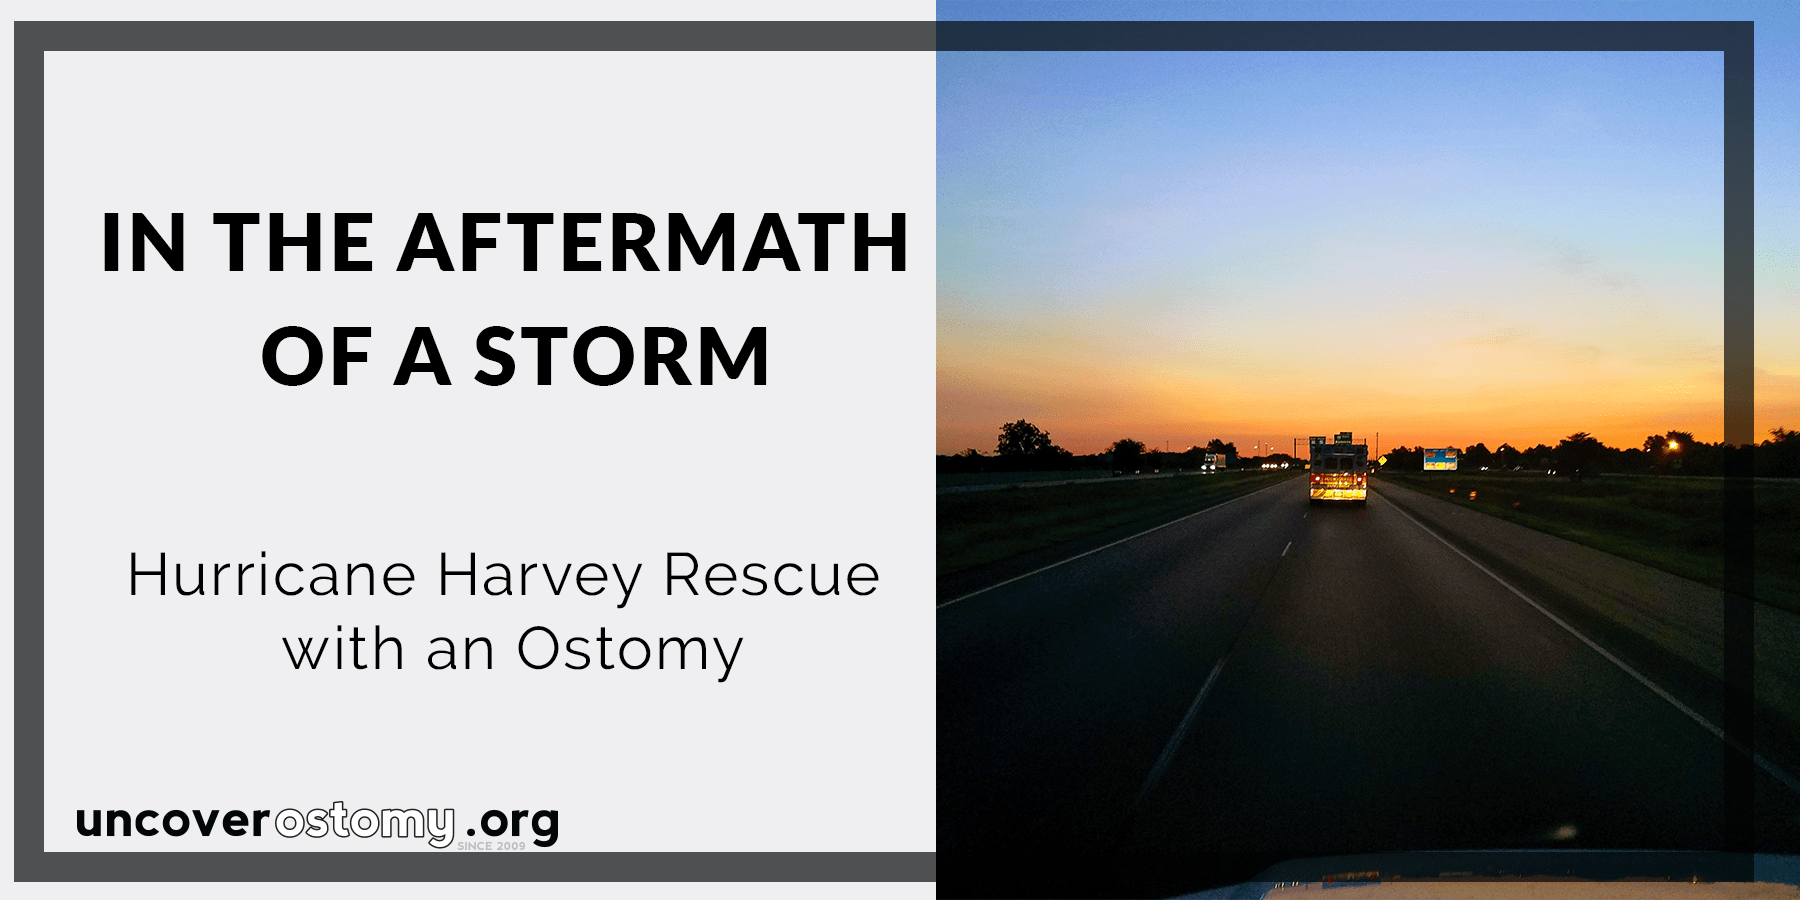 Uncover-Ostomy-Hurricane-Harvey-Brandon